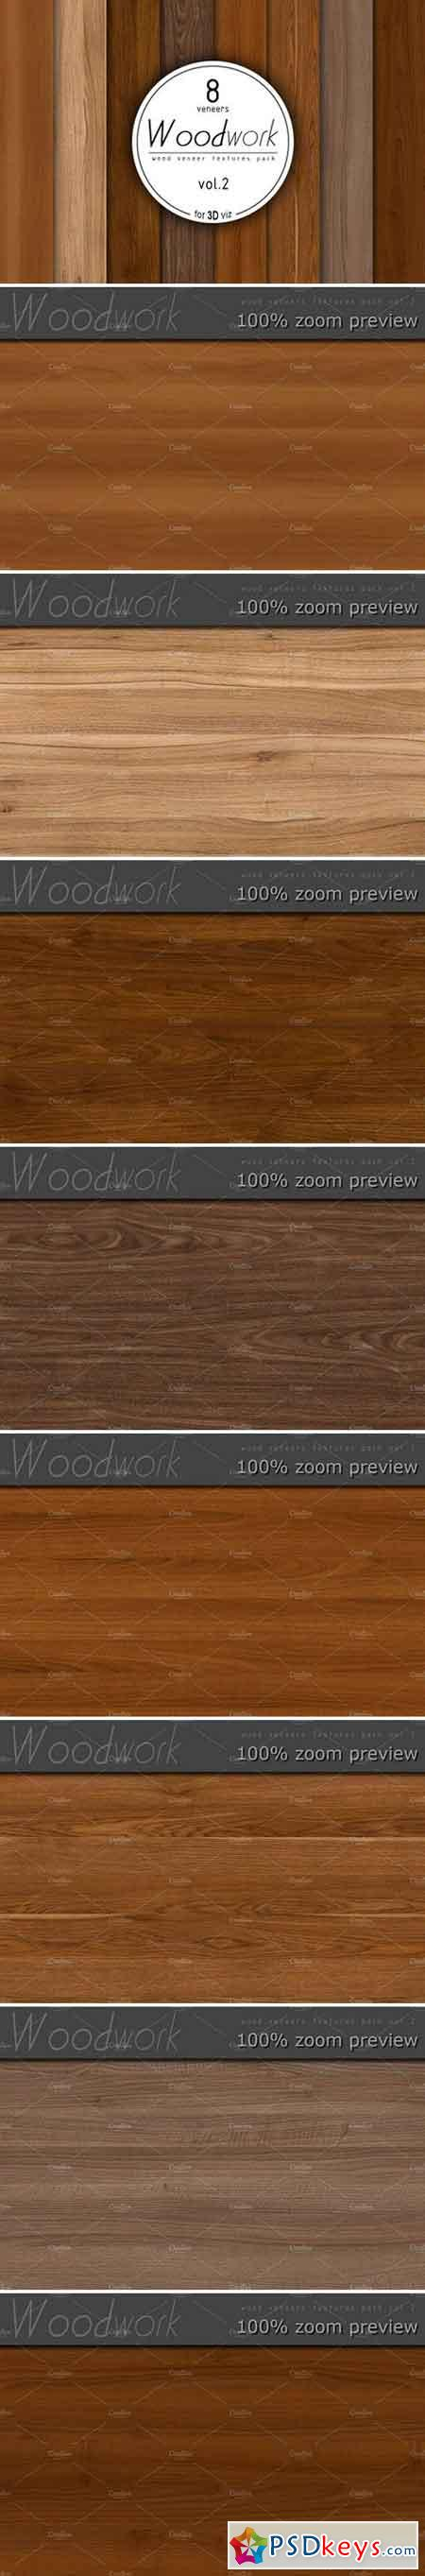 8 wood veneer texture pack vol.2 934806